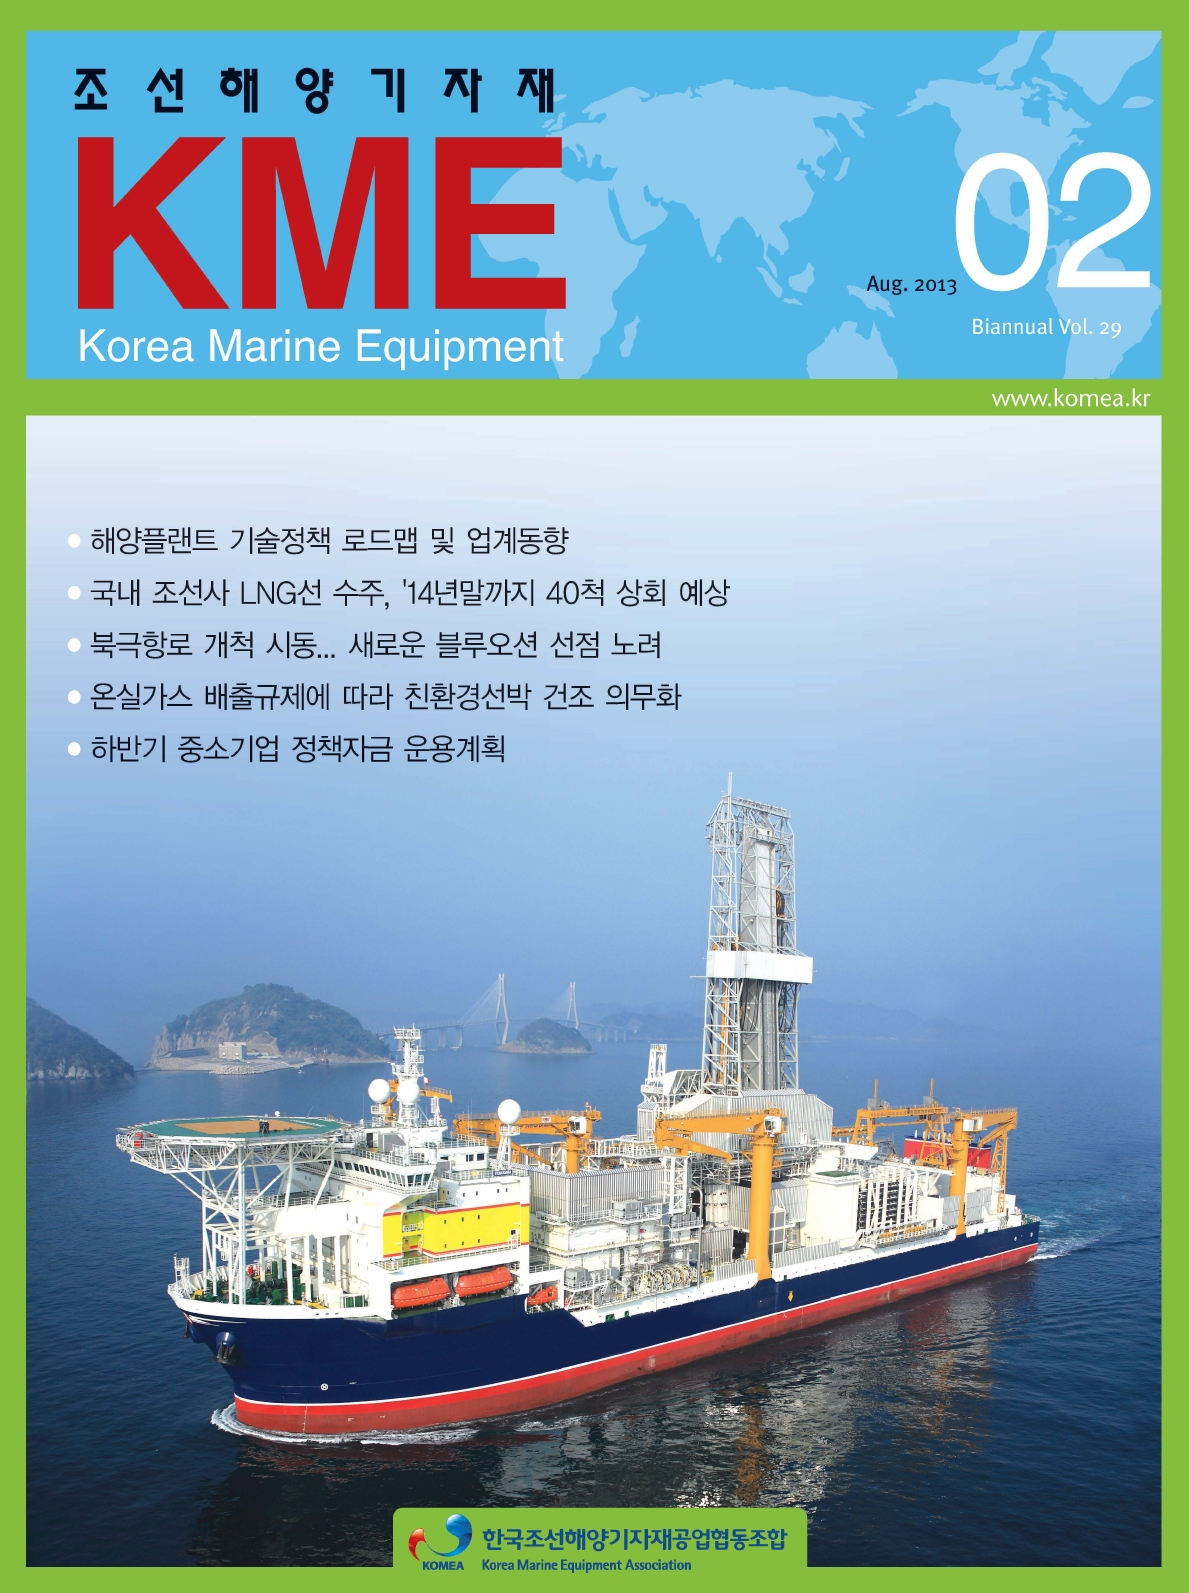 2013 下 KME (Korea Marine Equipment)